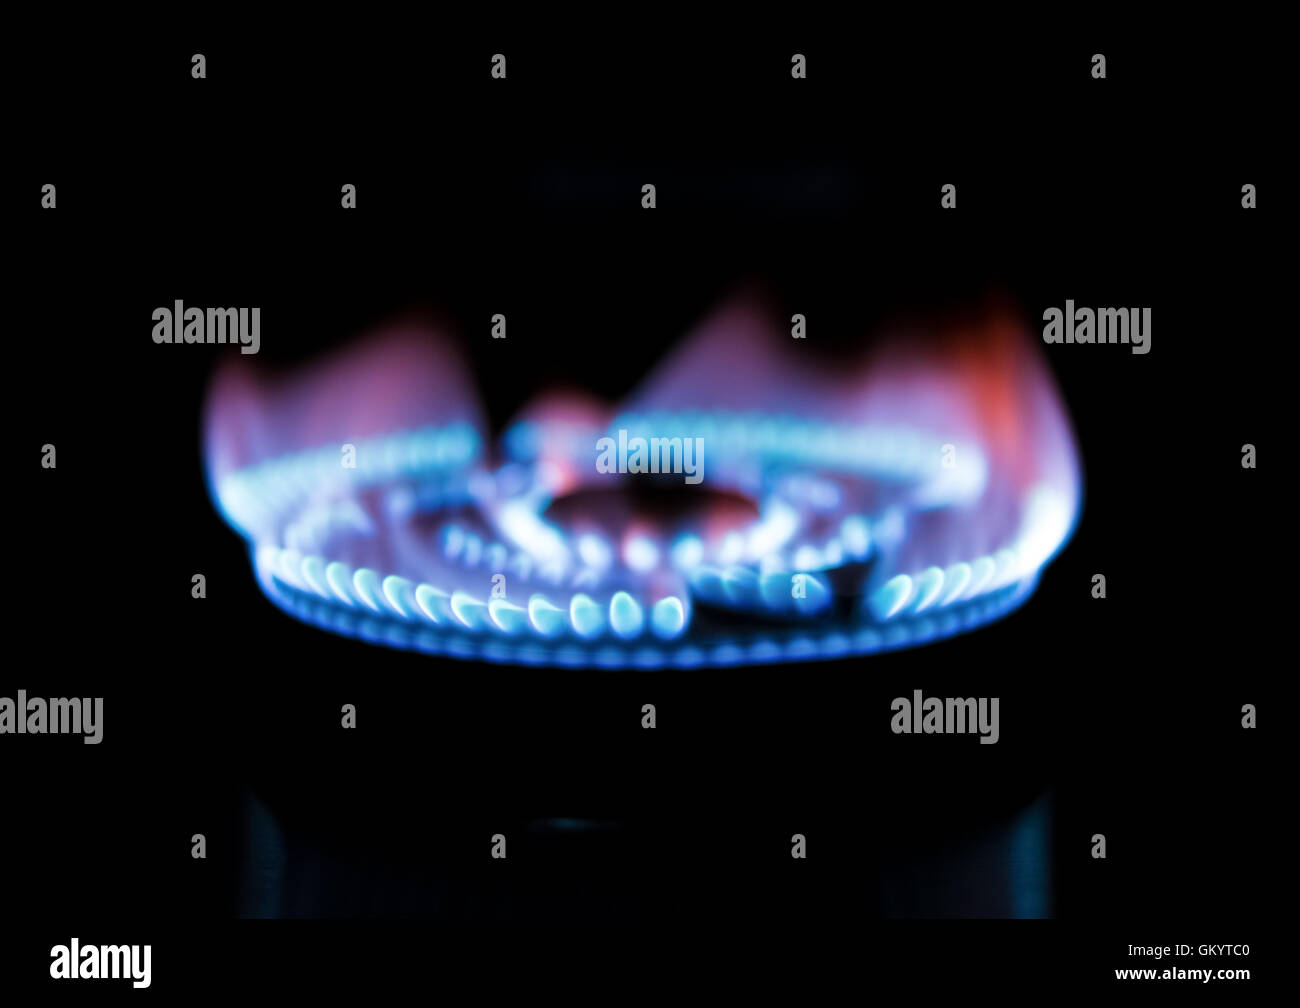 Gas Kochfeld Malerei : Gas burning stockfotos bilder seite alamy